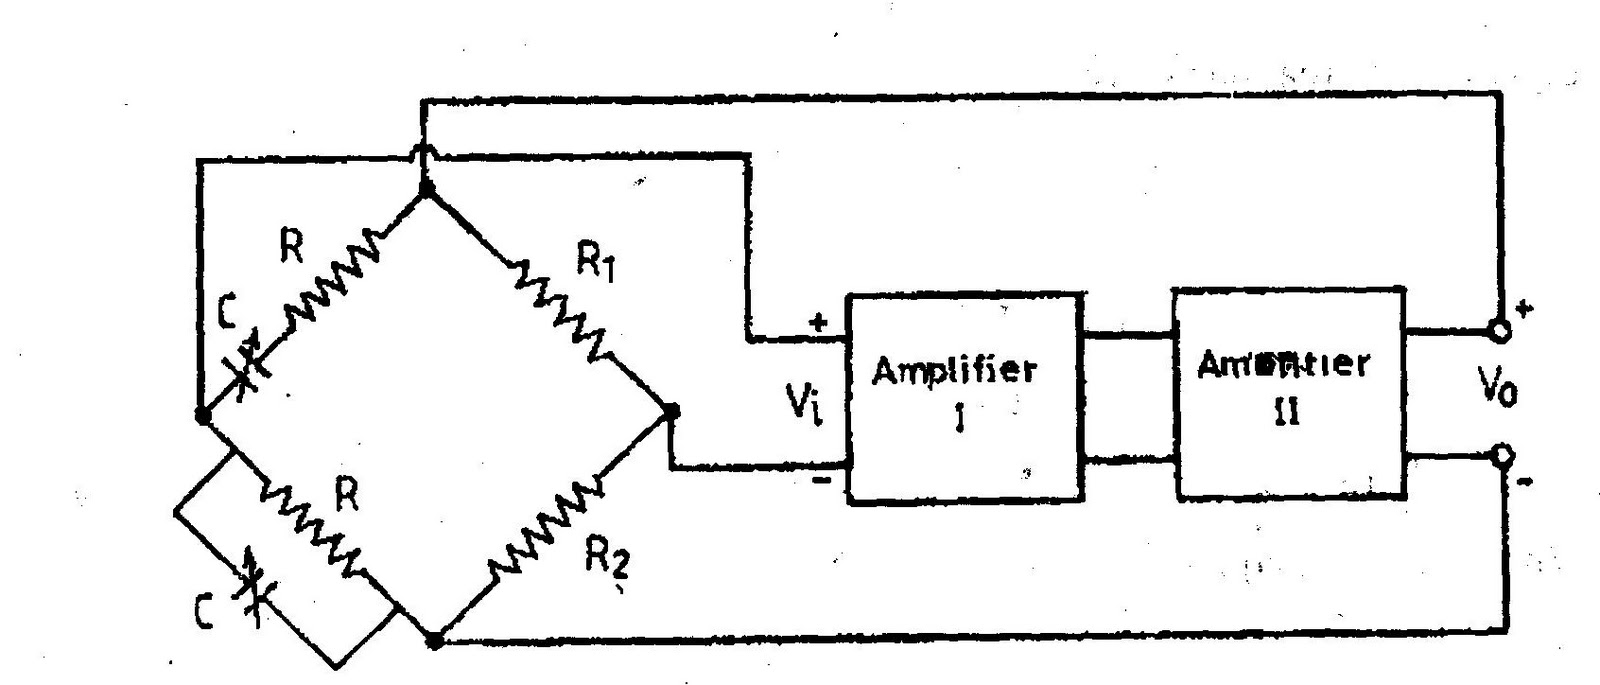 A Media To Get All Datas In Electrical Science September 2011 Current Load Isolation Amplifier Circuit Amplifiercircuit This Is Obtained By Introducing Two Resistances R1 And R2 The Feedback Network As Shown Figure